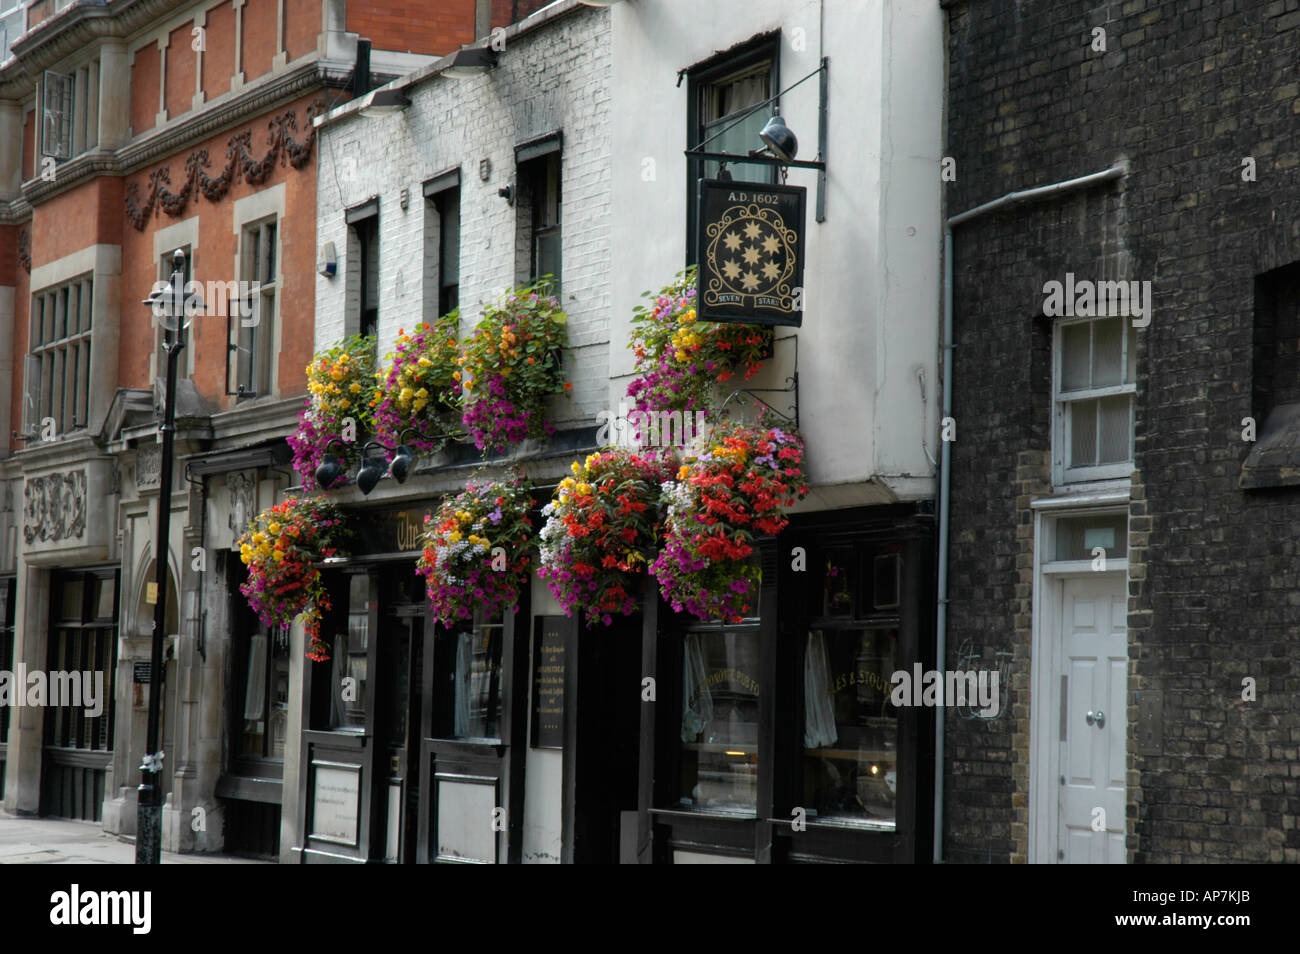 The Seven Stars public house in Carey Street next to Lincoln's Inn Holborn London England - Stock Image